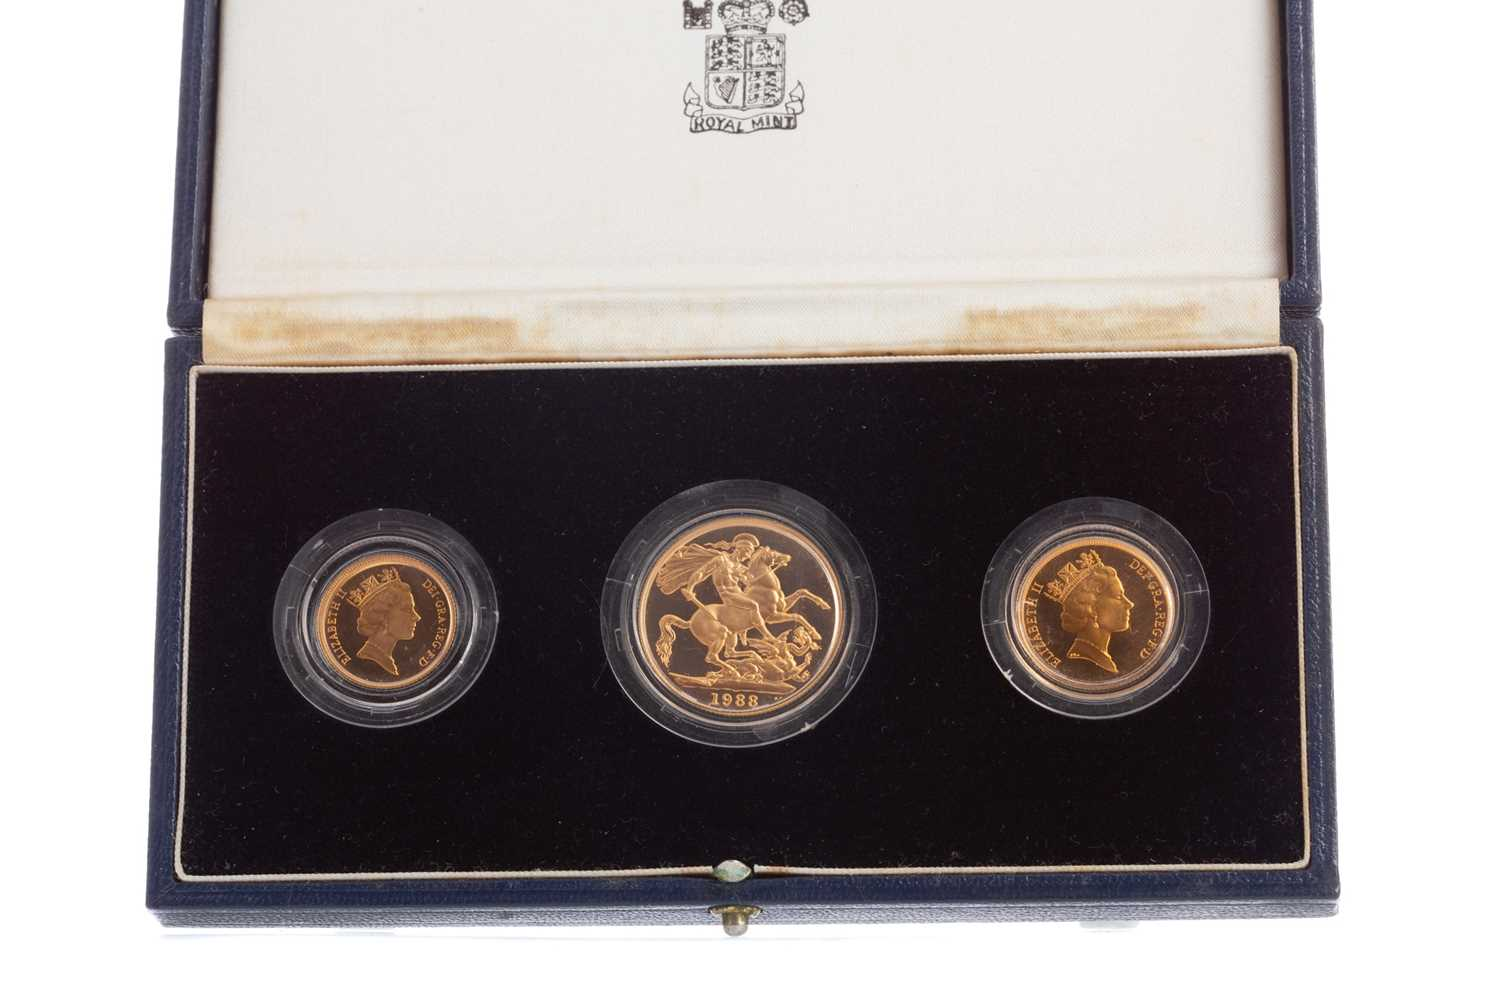 Lot 97 - THE 1988 GOLD PROOF THREE COIN SET